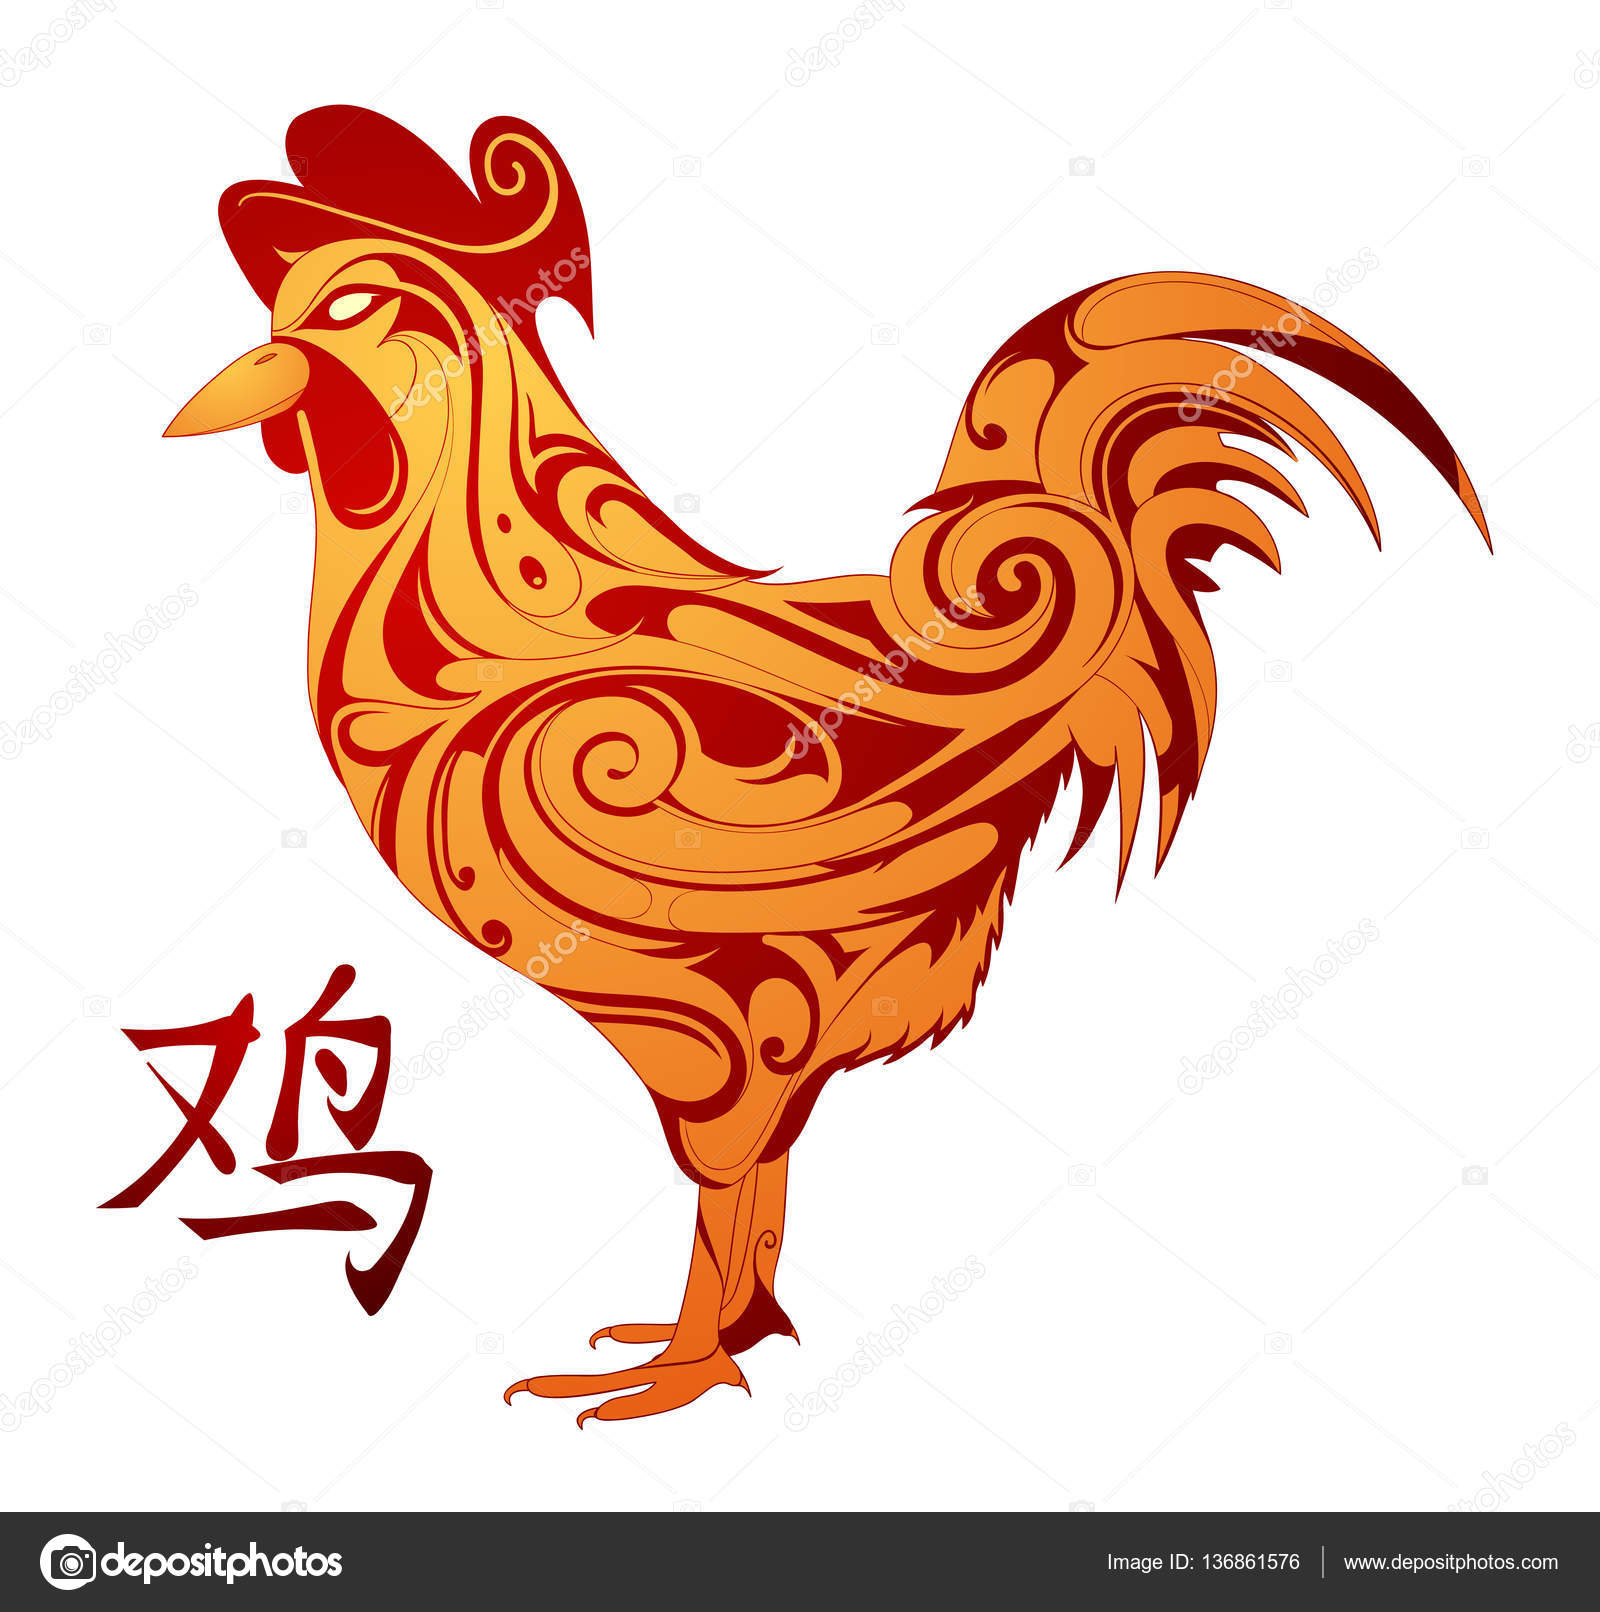 cba9f307a Rooster paper cut figure. Animal symbol for year 2017 by Chinese horoscope.  Hieroglyph translation Rooster. Good for coloring book illustrations and ...